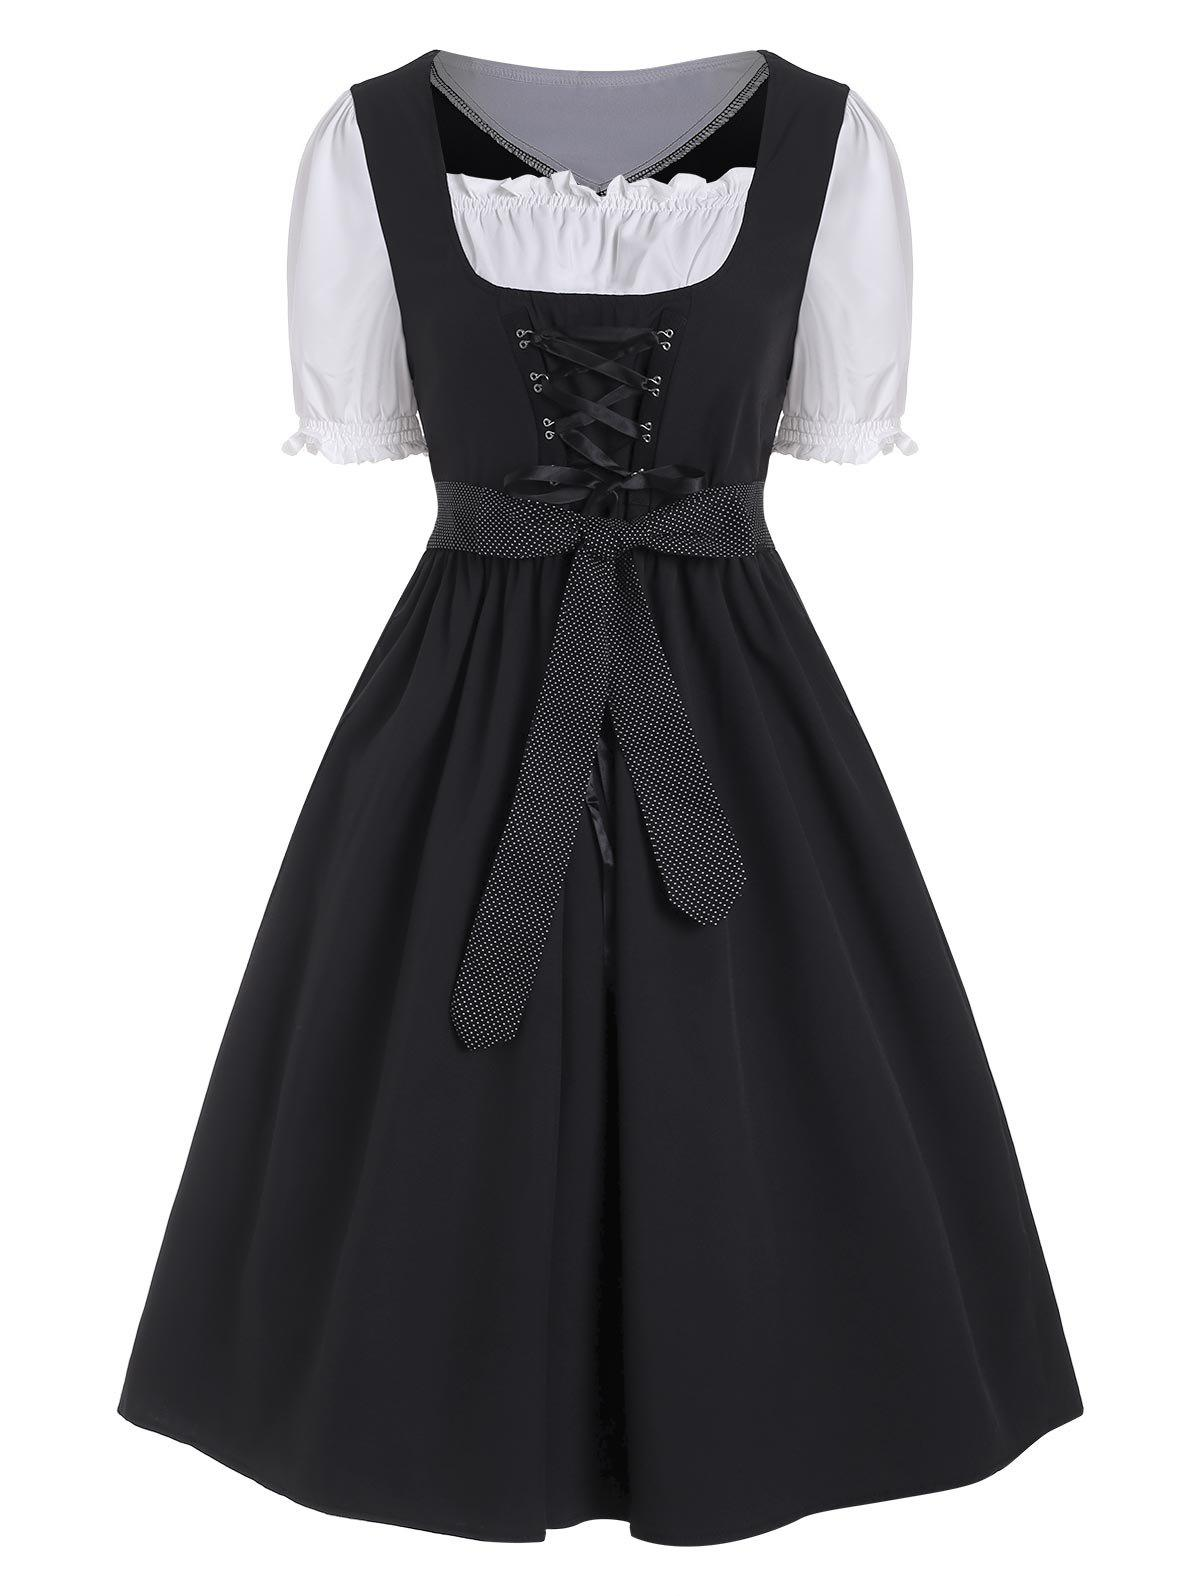 Colorblock Ruffle Lace Up Belted Dirndl Dress - BLACK 2XL